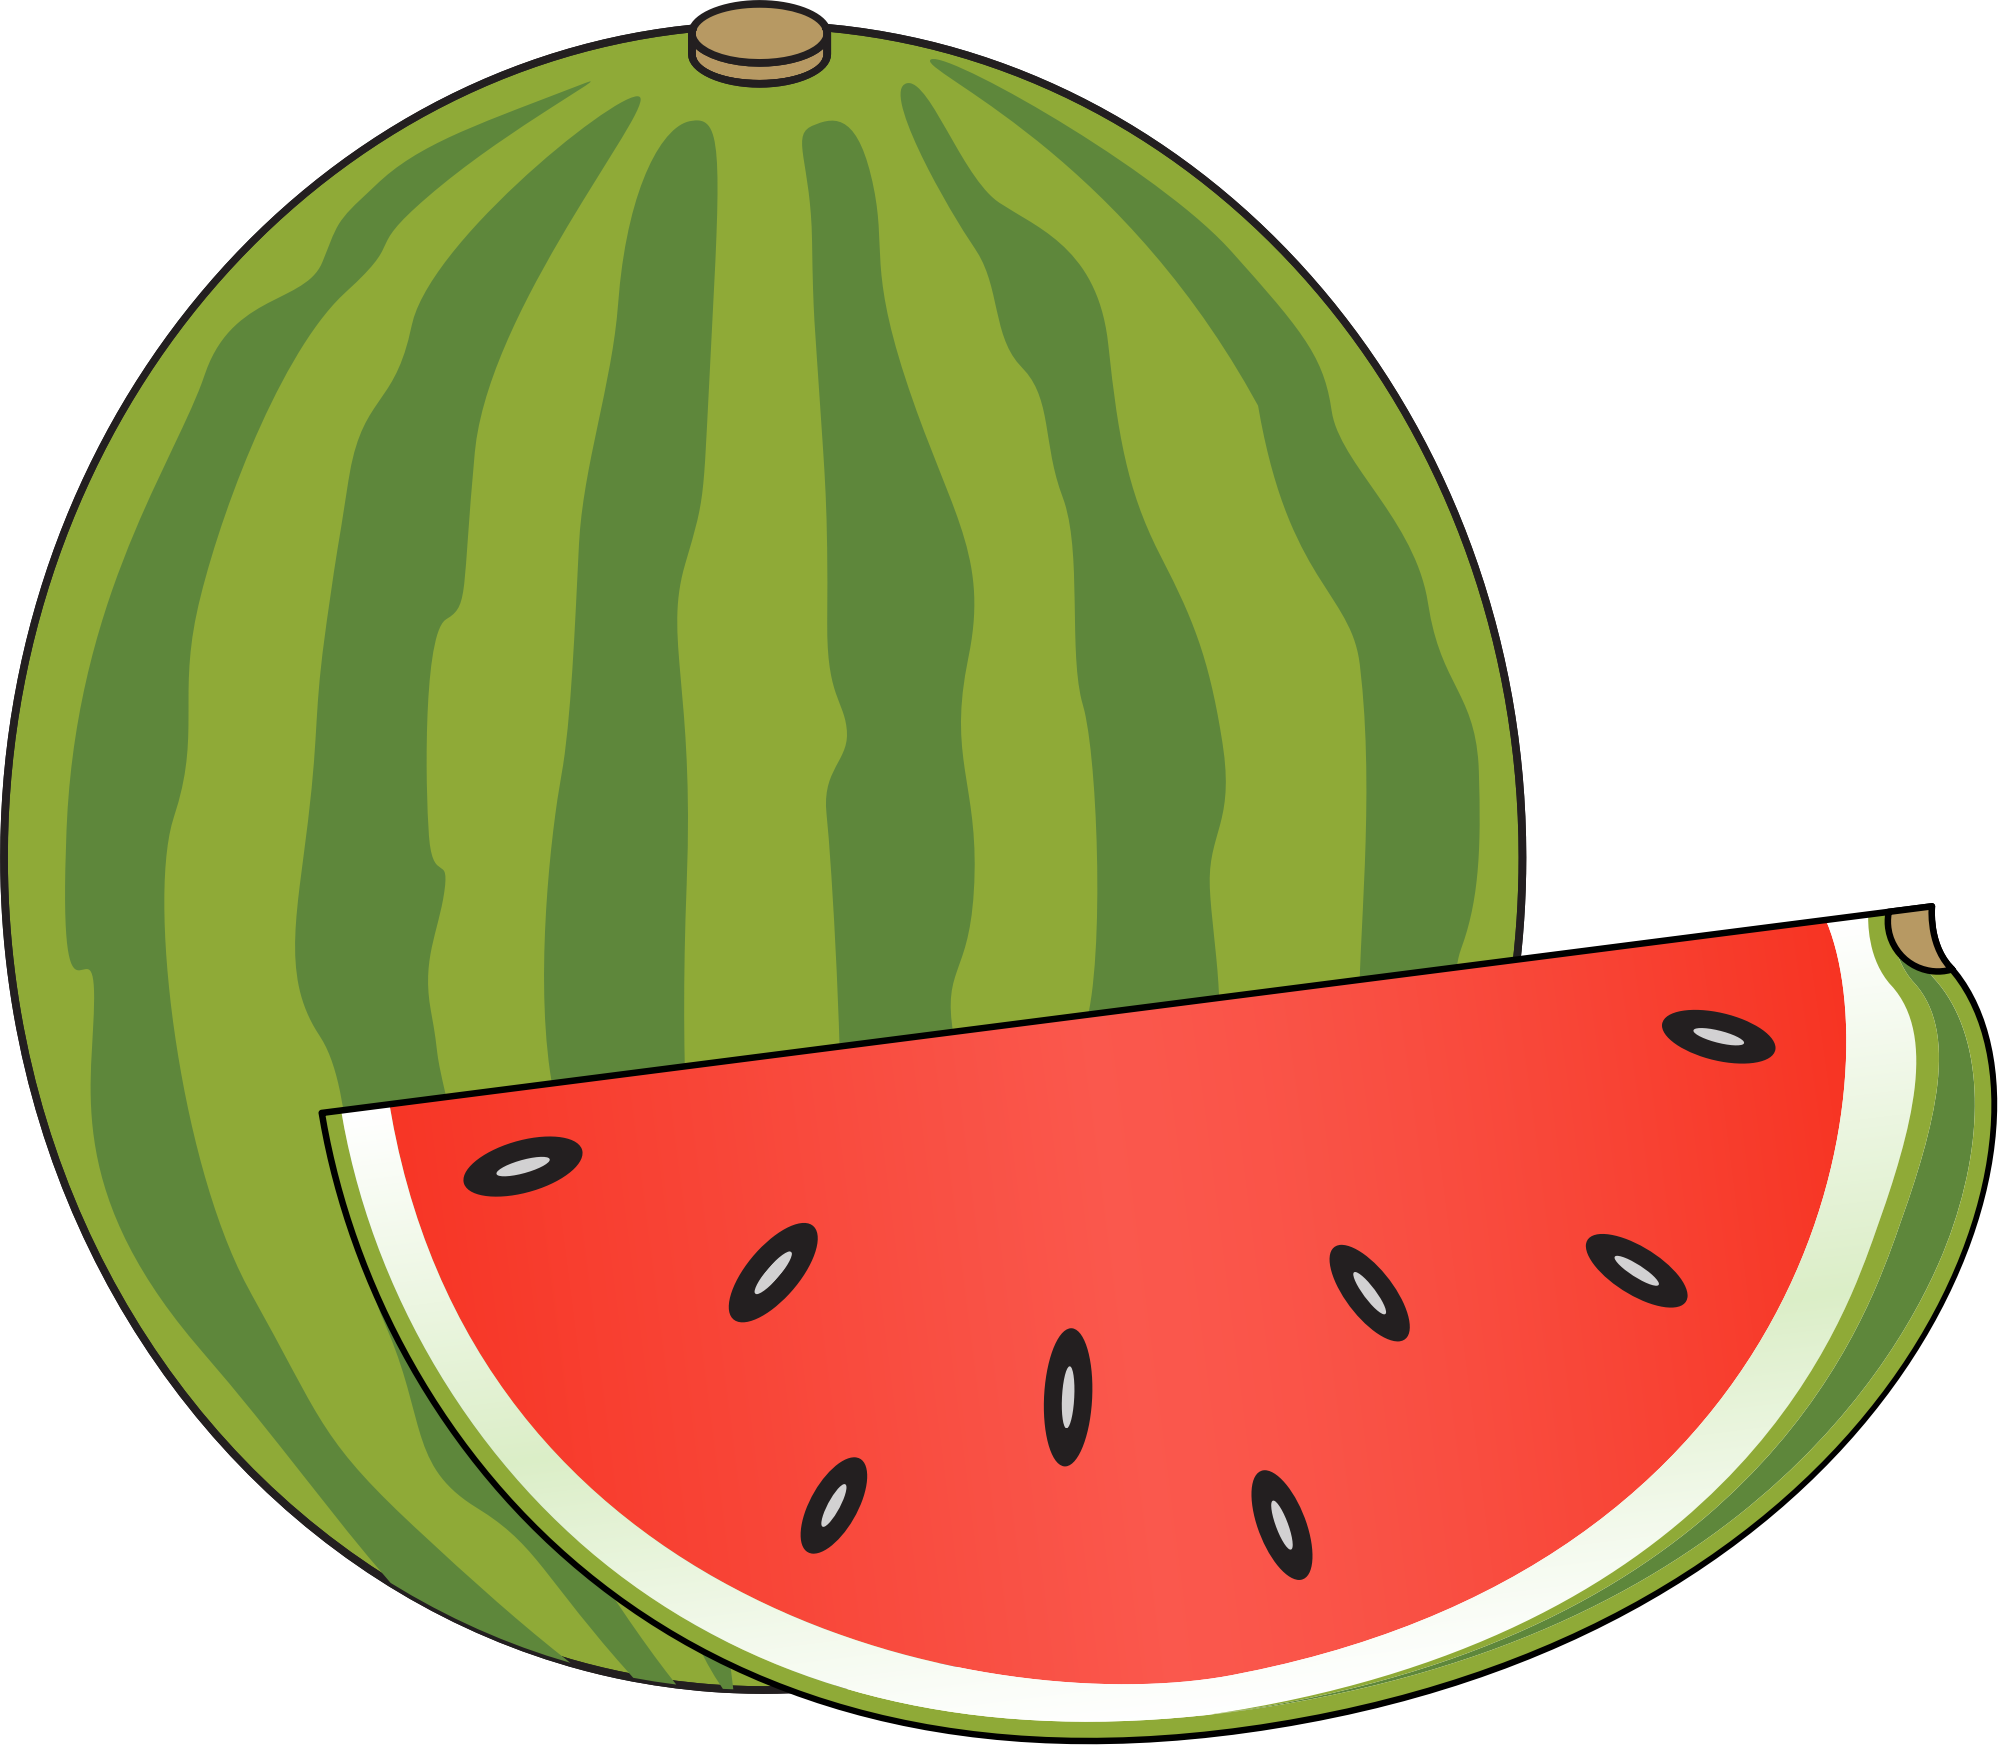 Watermelon clipart smiling watermelon. Free watermellon pictures download